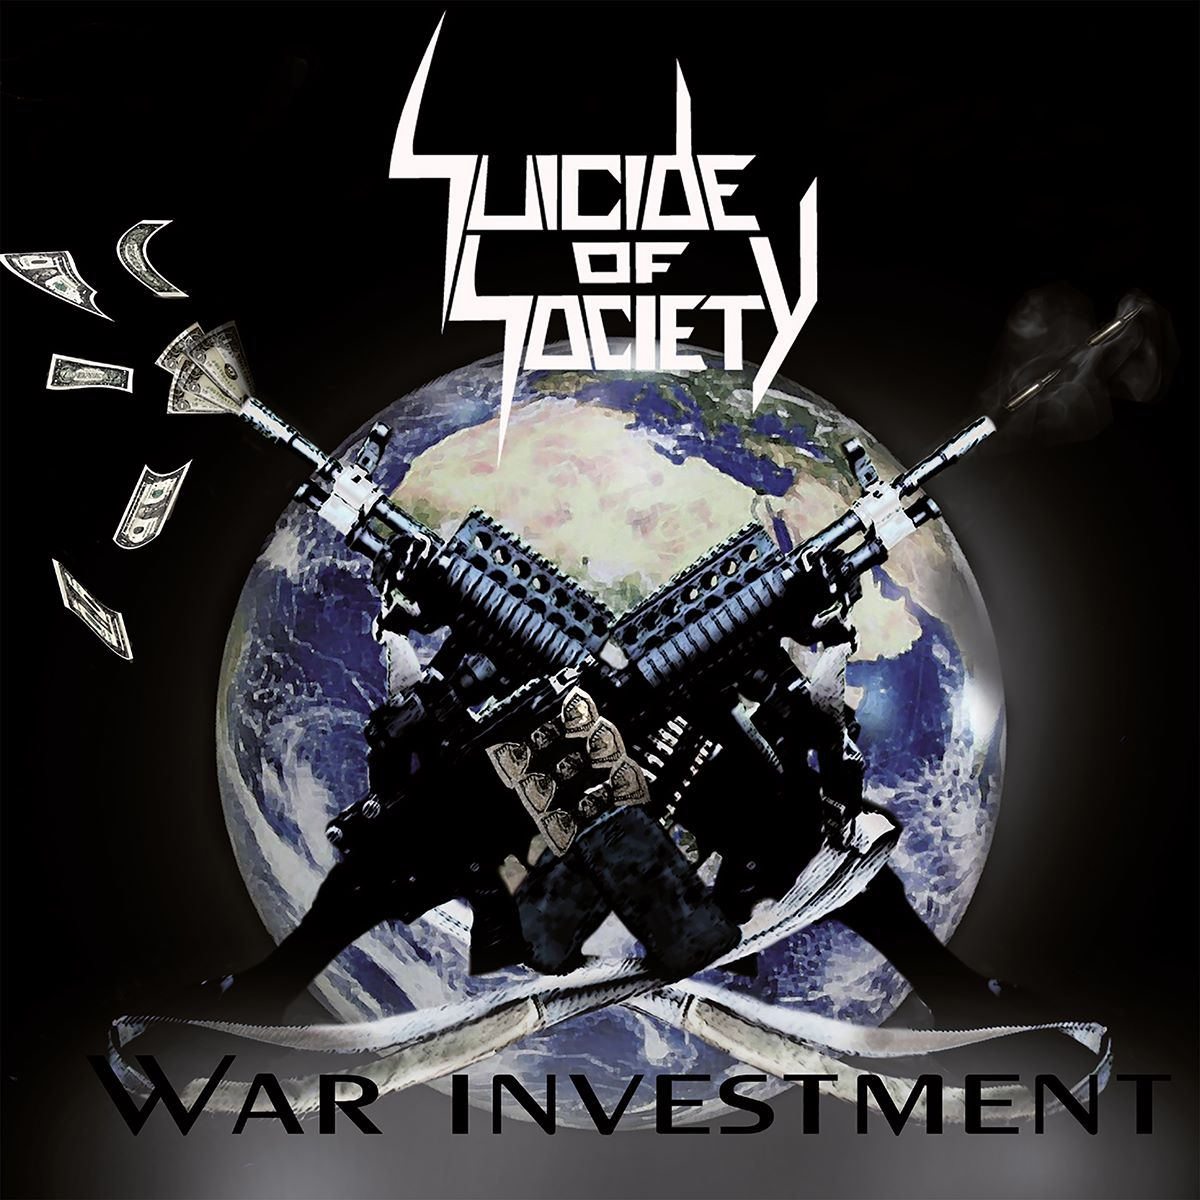 Suicide Of Society - War Investment - album cover